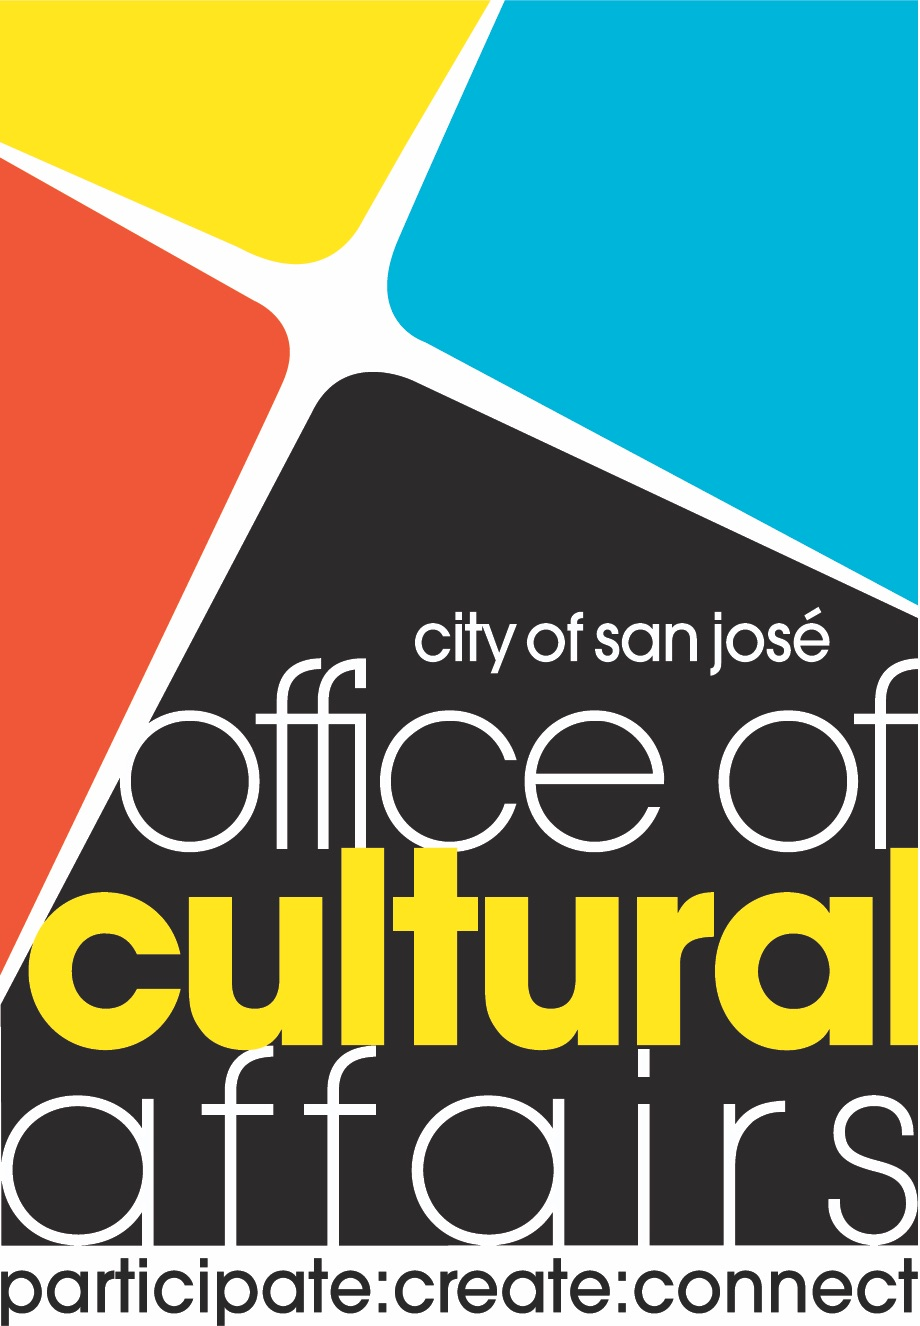 City of San José Office of Cultural Affairs logo